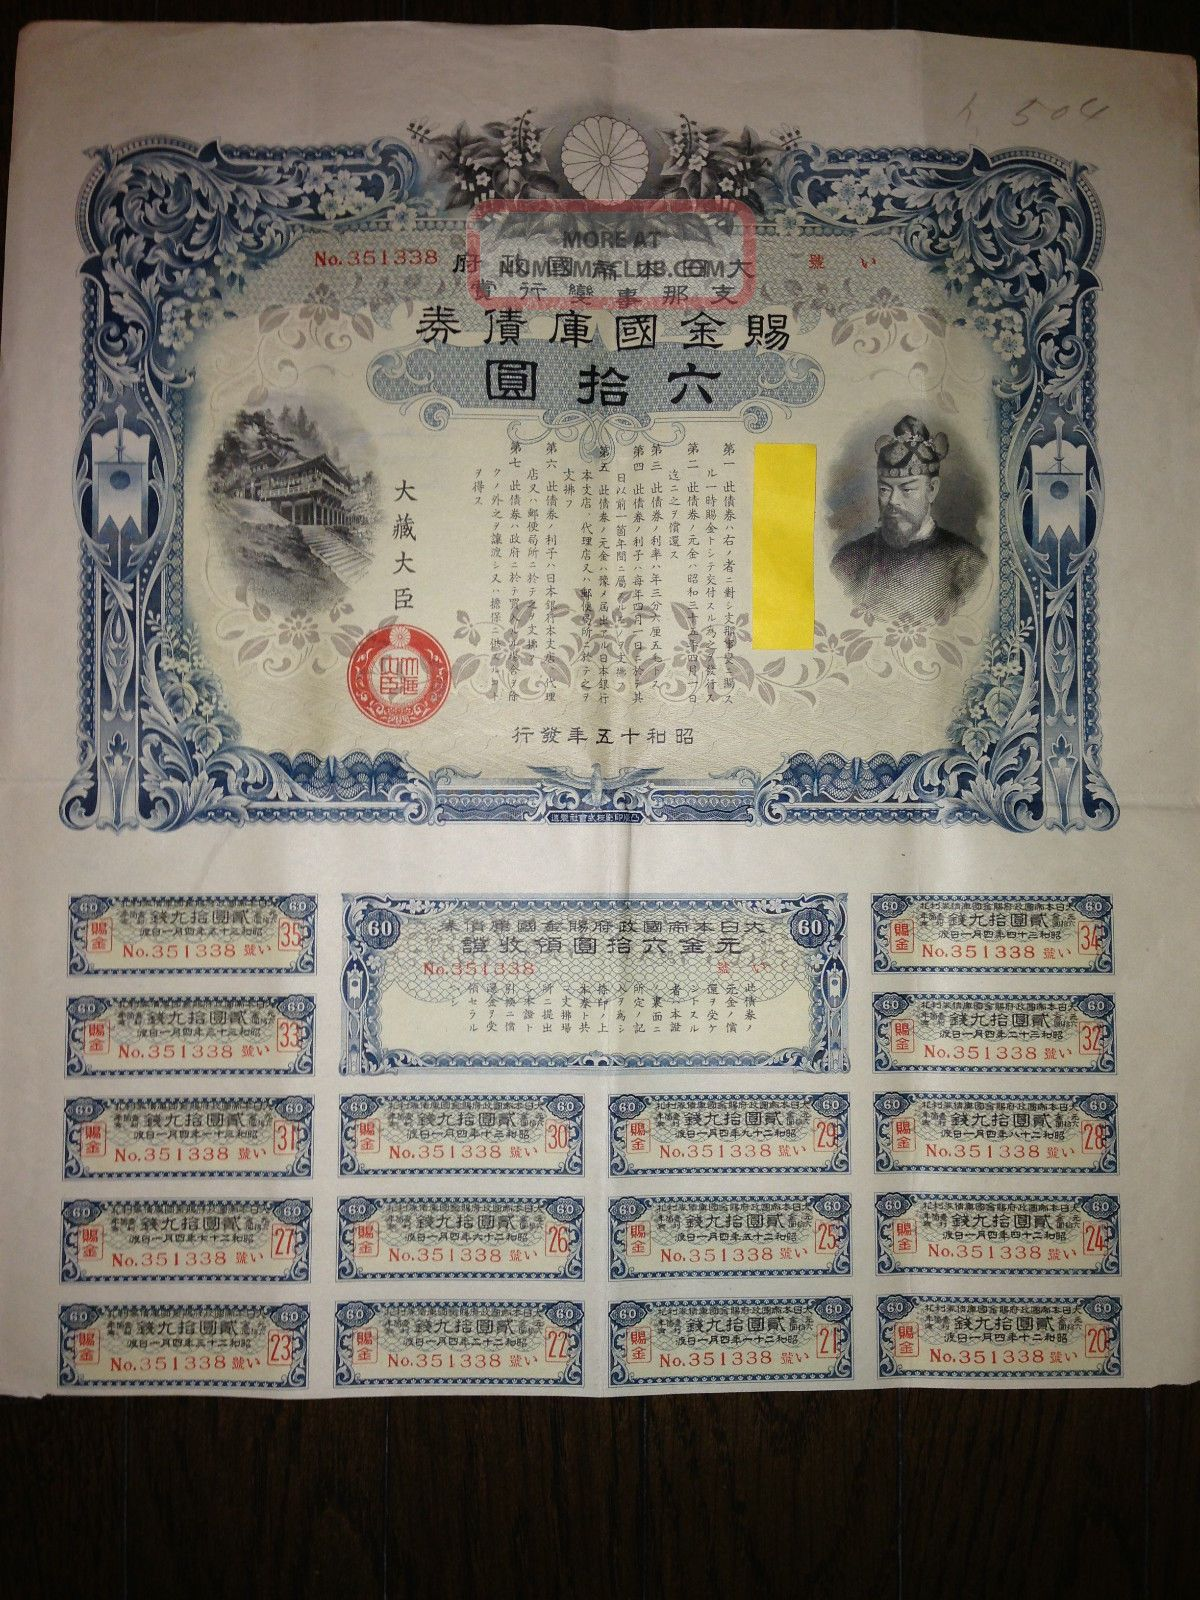 1940.  Sino - Japanese War.  Ww2 Imperial Government Bond Of Japan.  Japan - China War Stocks & Bonds, Scripophily photo